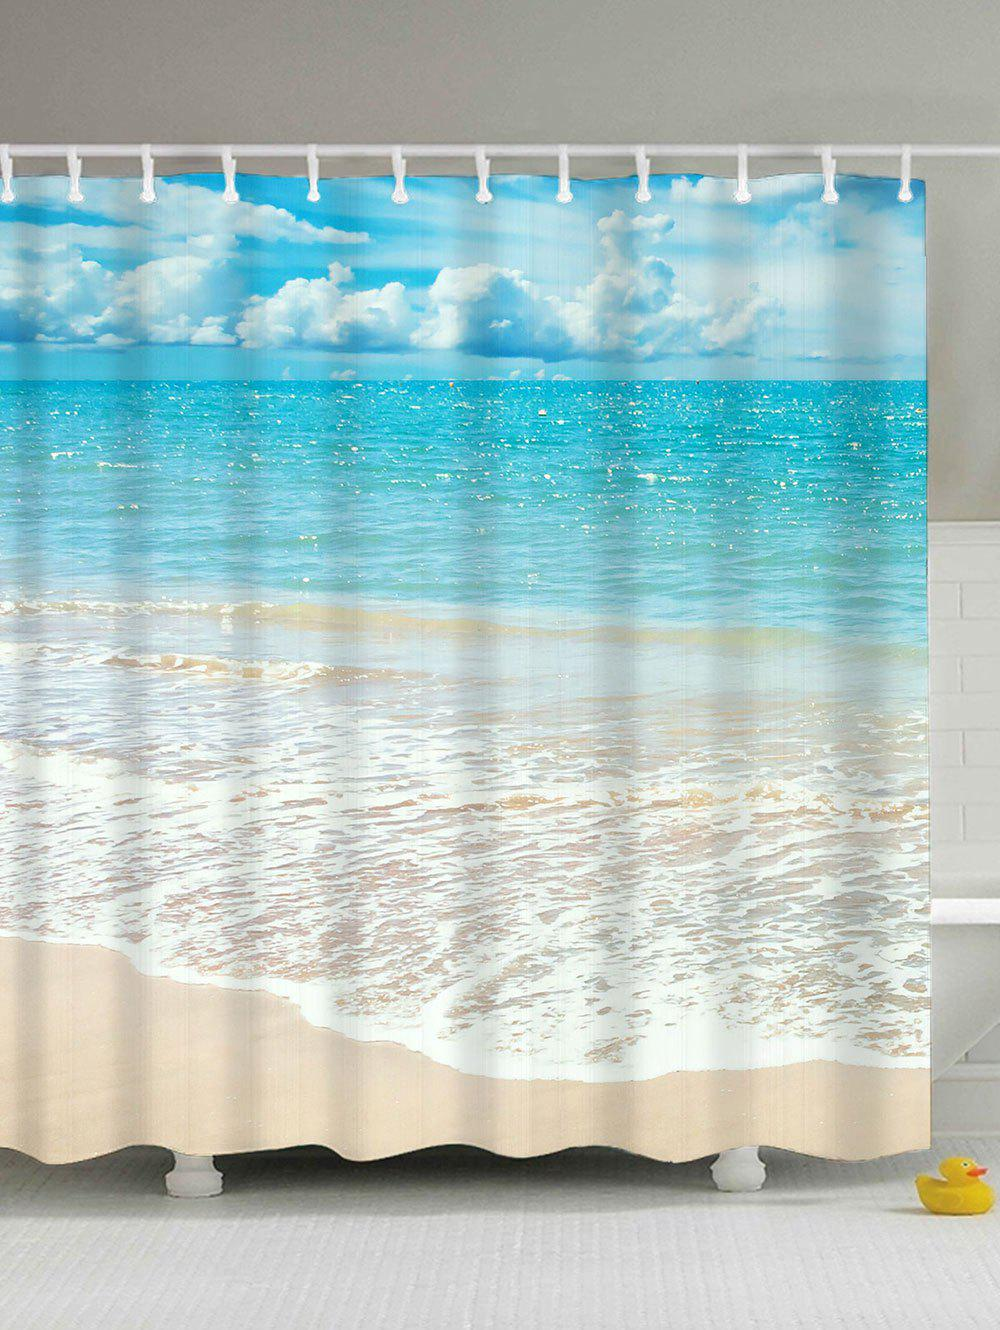 Beach Scenery Anti-bacteria Mouldproof Shower Curtain - LIGHT BLUE 180*180CM